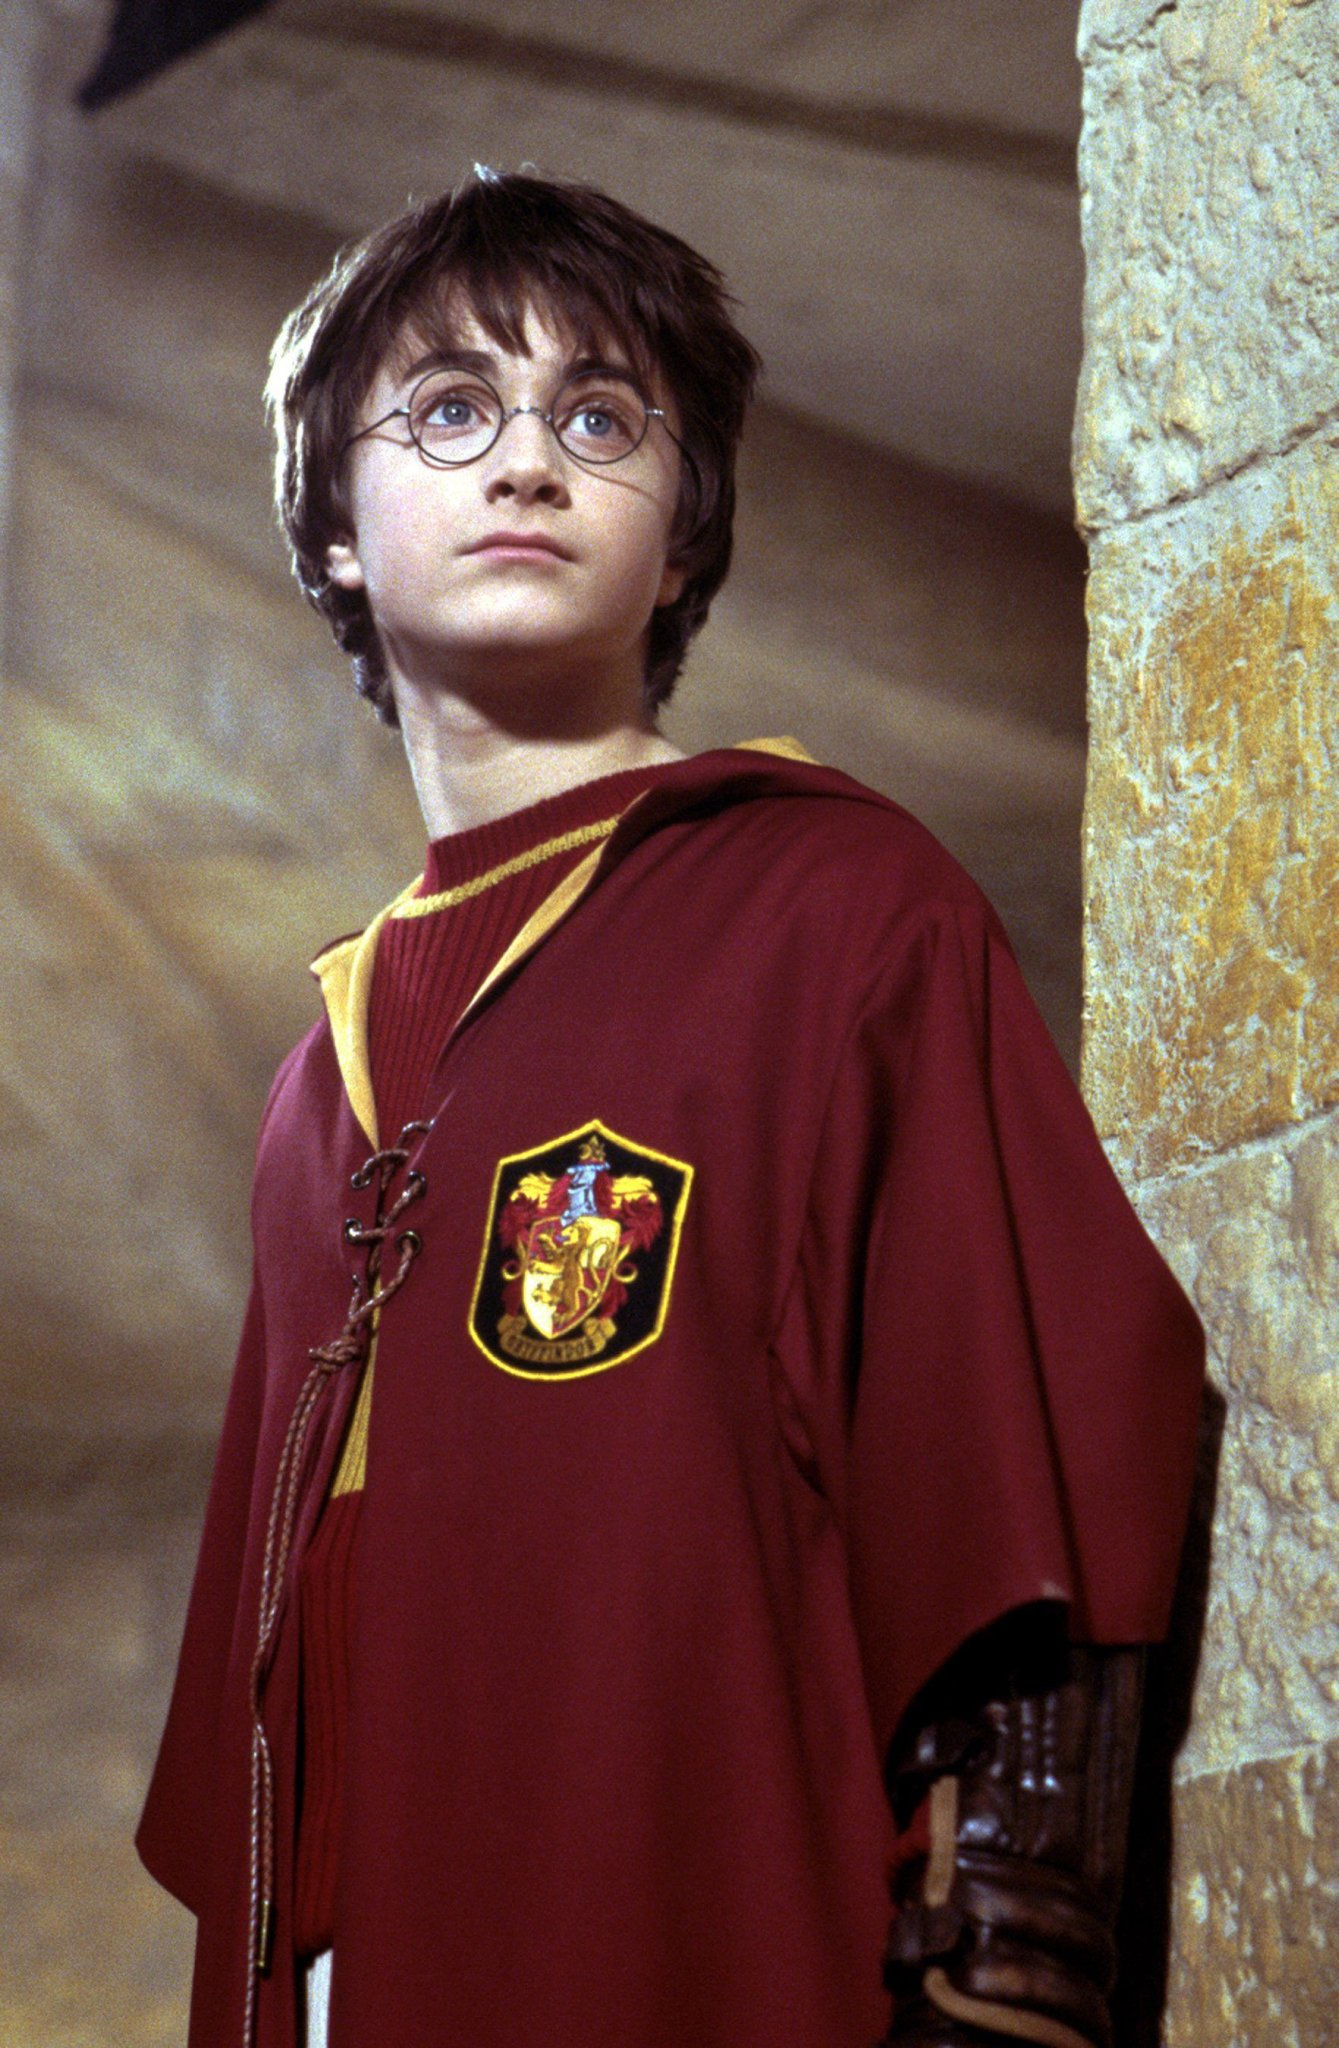 """Harry Potter Quiz: How Well Do You Know """"The Boy Who Lived"""" - Fame10"""